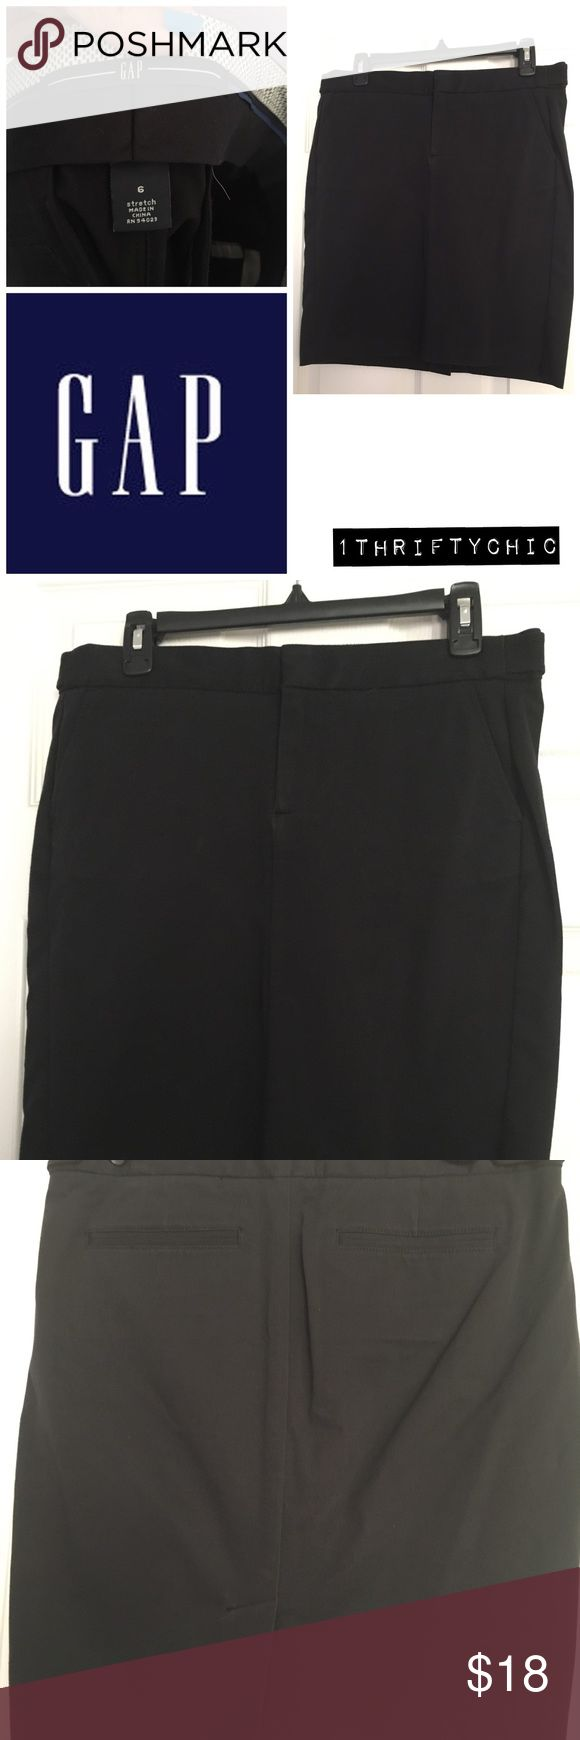 Gap Black Stretch Skirt 🚨CYBER MONDAY DEAL 🚨Black stretch skirt. No rips or stains. Good condition. GAP Skirts